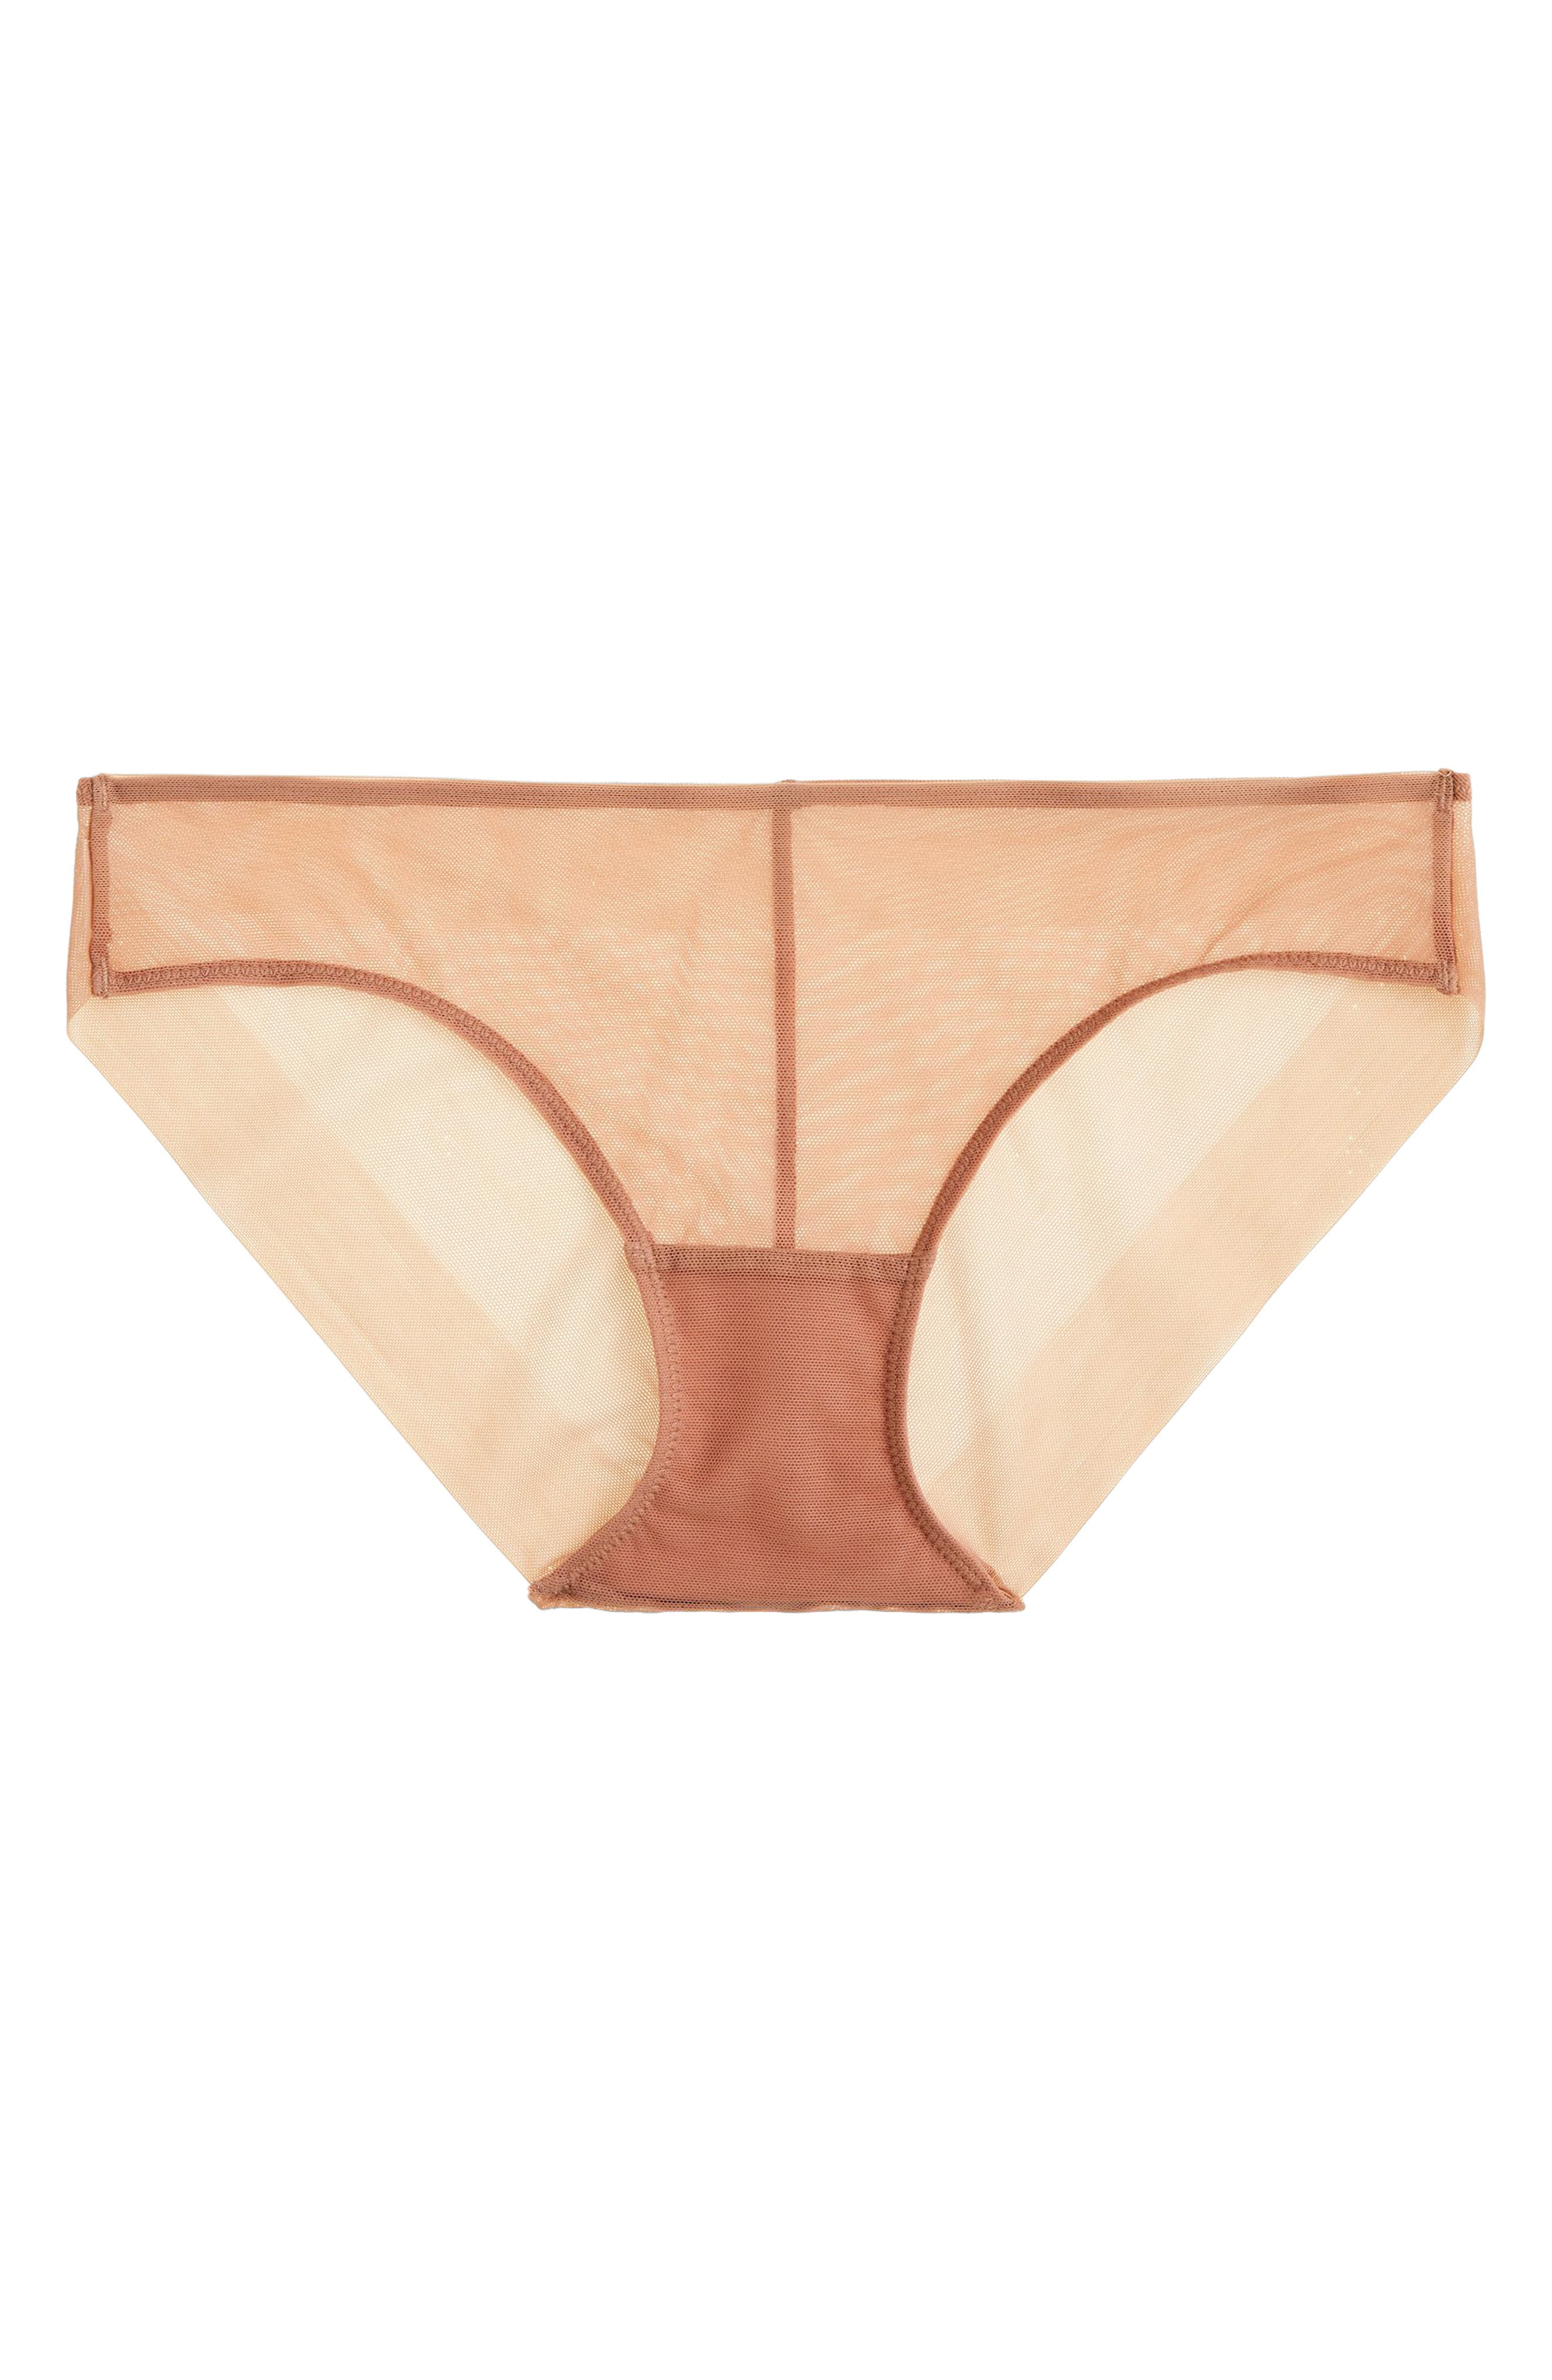 Second Skin Bikini,                         Main,                         color, Pale Sepia